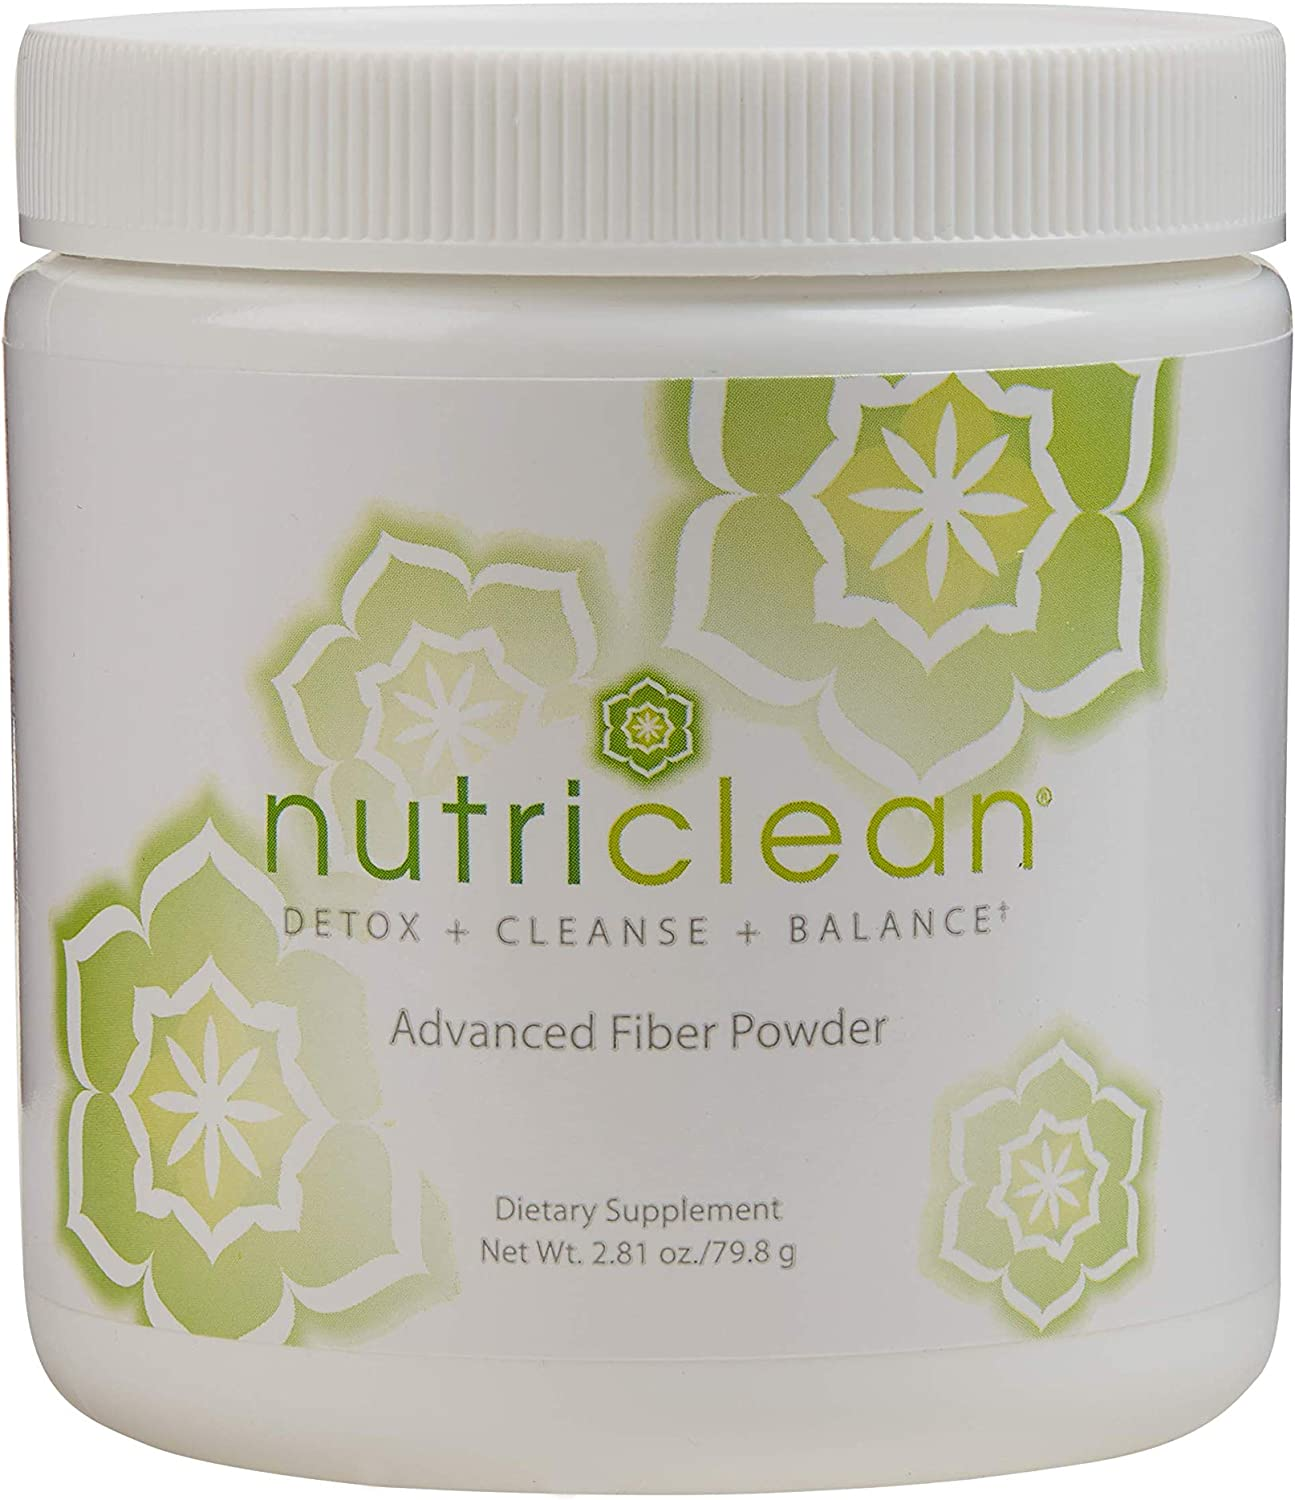 NutriClean 7 Day Cleansing System with Stevia | Detox | Cleanse | Advanced Fiber Powder | Maintain Digestive Health | Helps Cleanse the Colon | Promotes Liver Health & Healthy Digestive Tract | Market America (7 Servings)